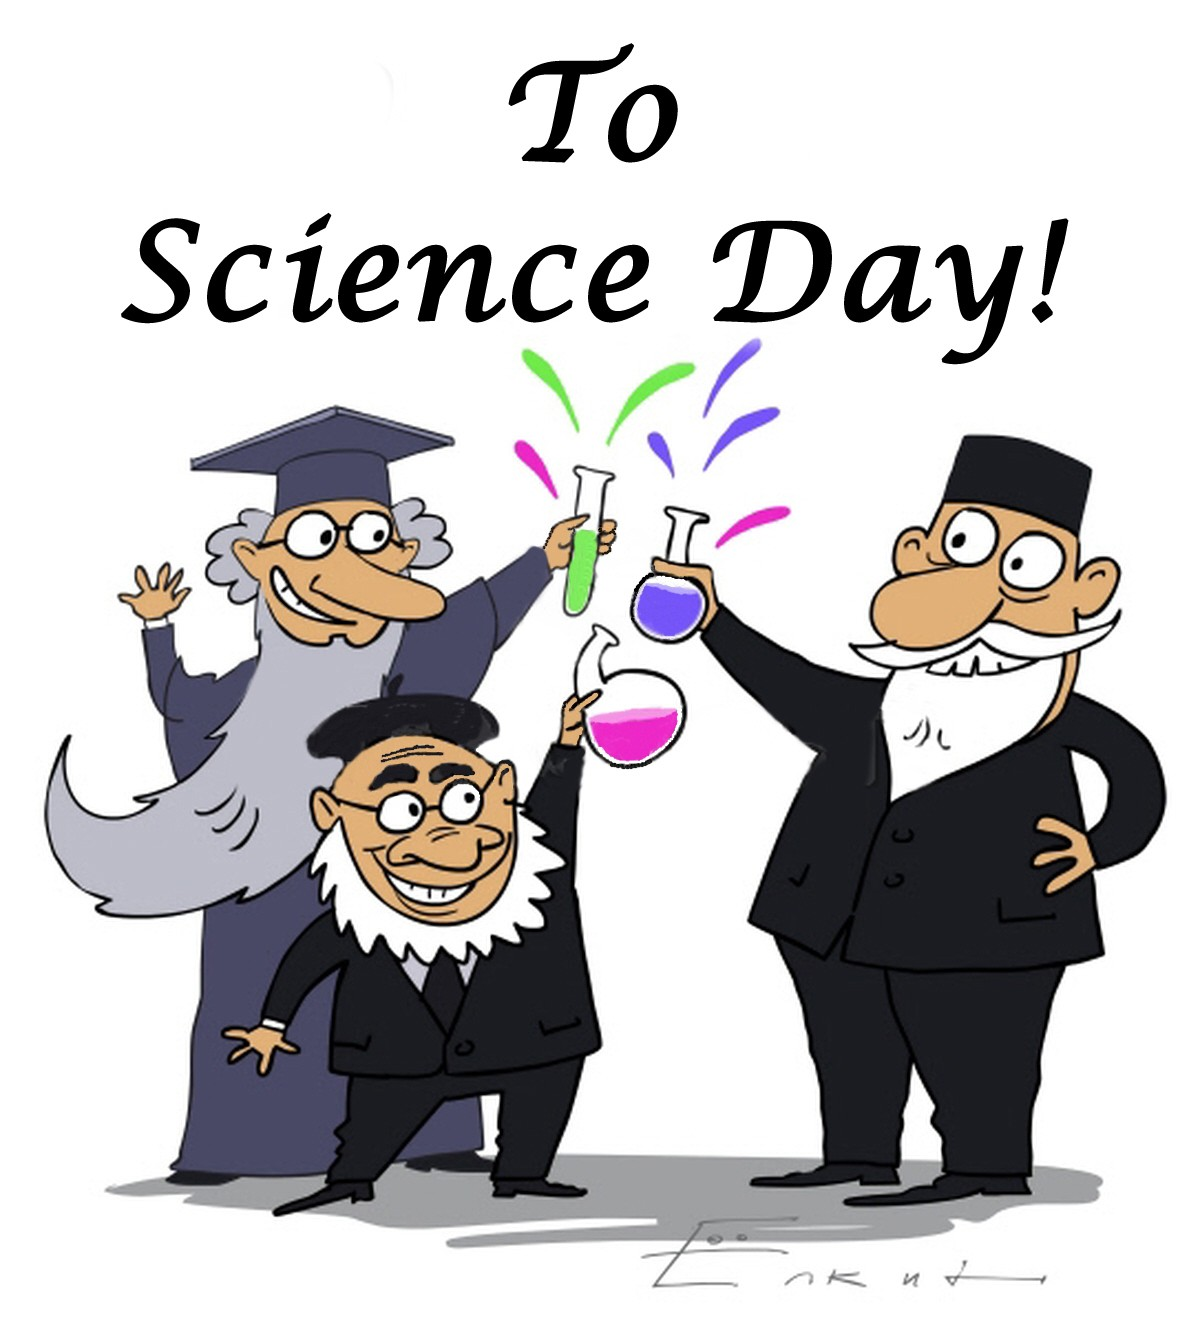 World Science Day 2011 http://02varvara.wordpress.com/2012/06/30/30-june-2012-sergei-yolkins-world-to-science-day/sergei-yolkin-to-science-day-2010/